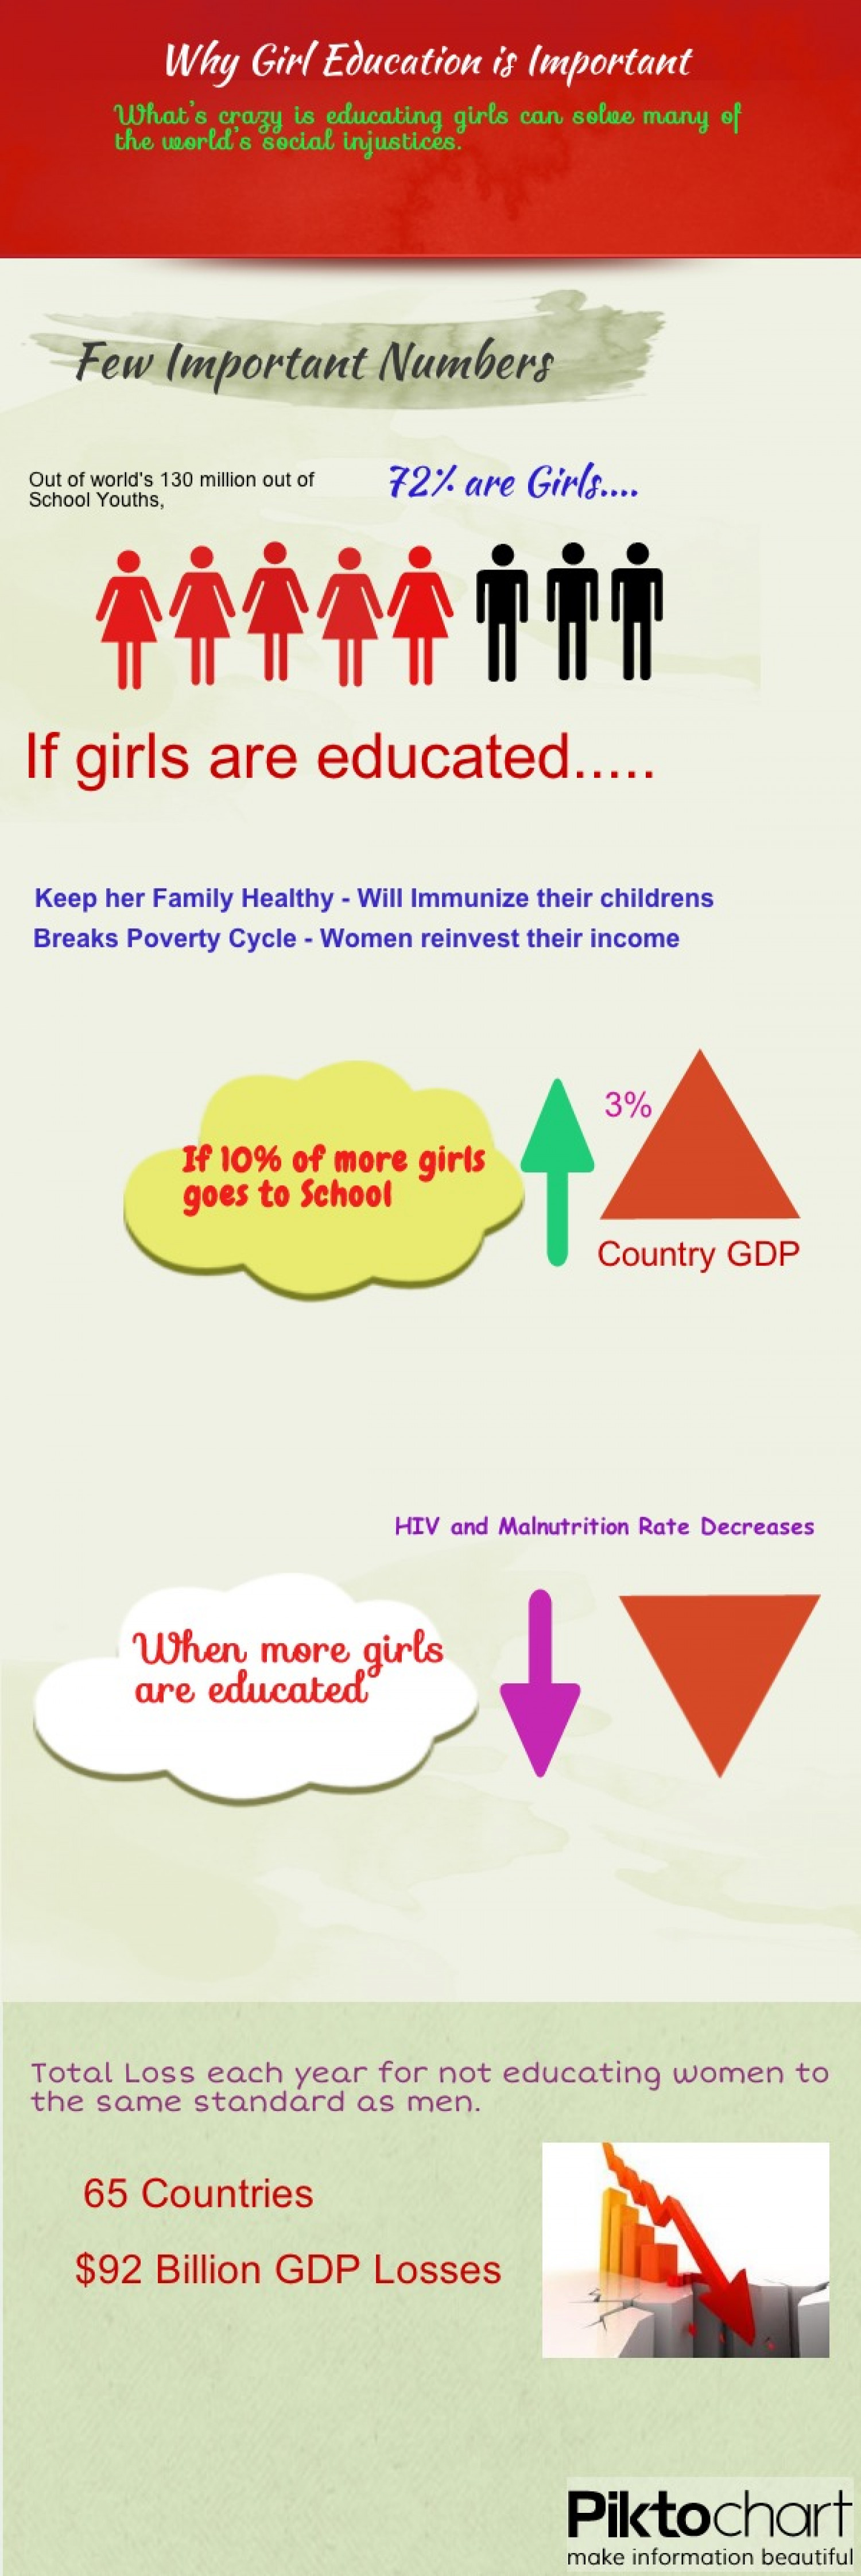 Why Girl Education is Important? Infographic